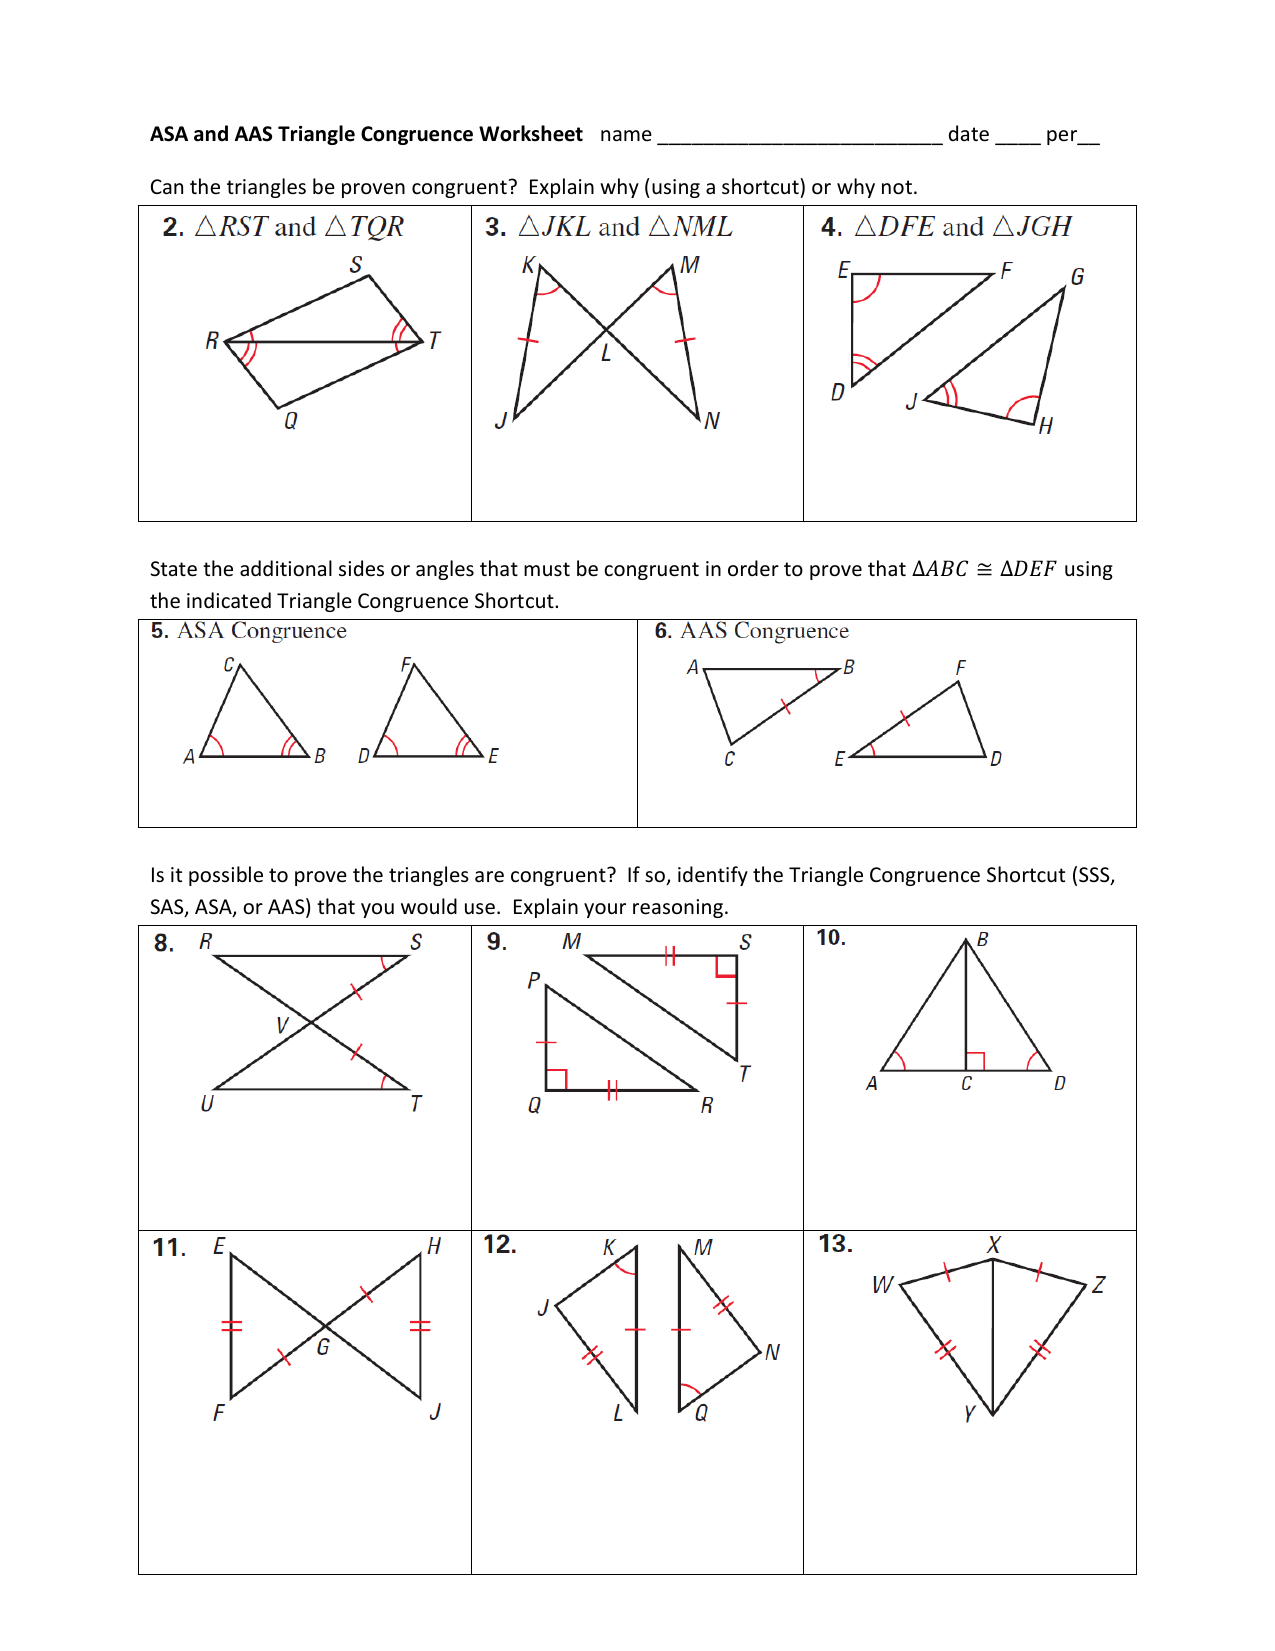 Triangle Congruence Worksheet Answer Key : triangle, congruence, worksheet, answer, Worksheet, Triangle, Congruence, Printable, Worksheets, Activities, Teachers,, Parents,, Tutors, Homeschool, Families